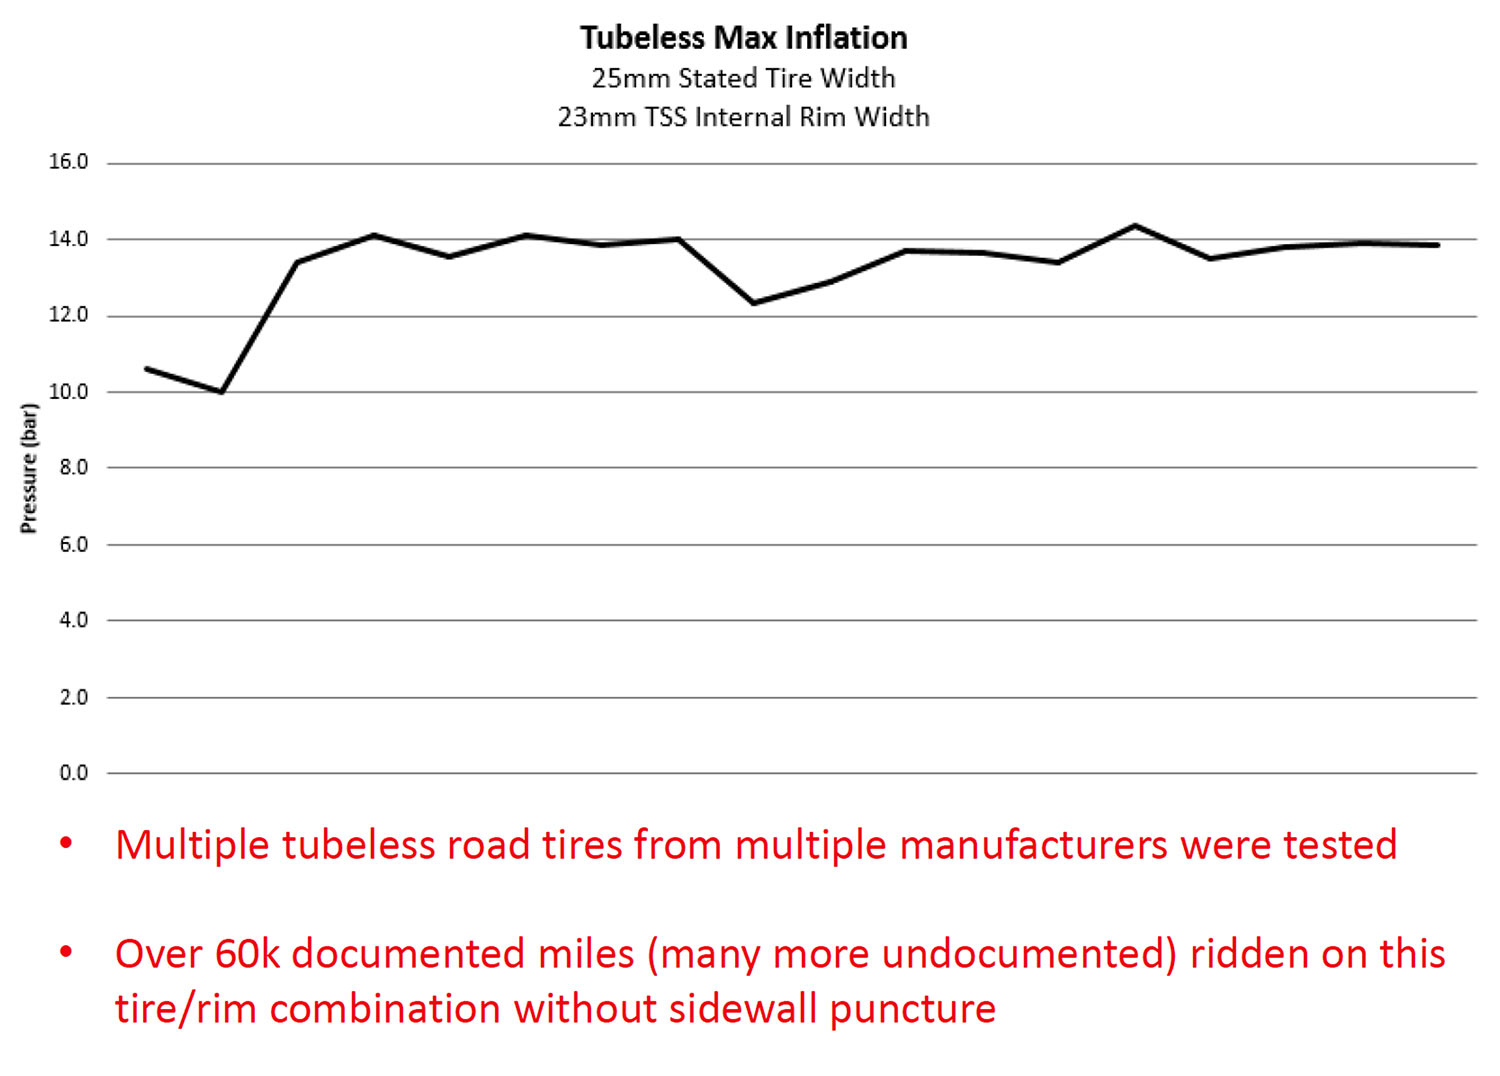 tire blowoff pressure chart showing burst pressure when tires are blown off of rims